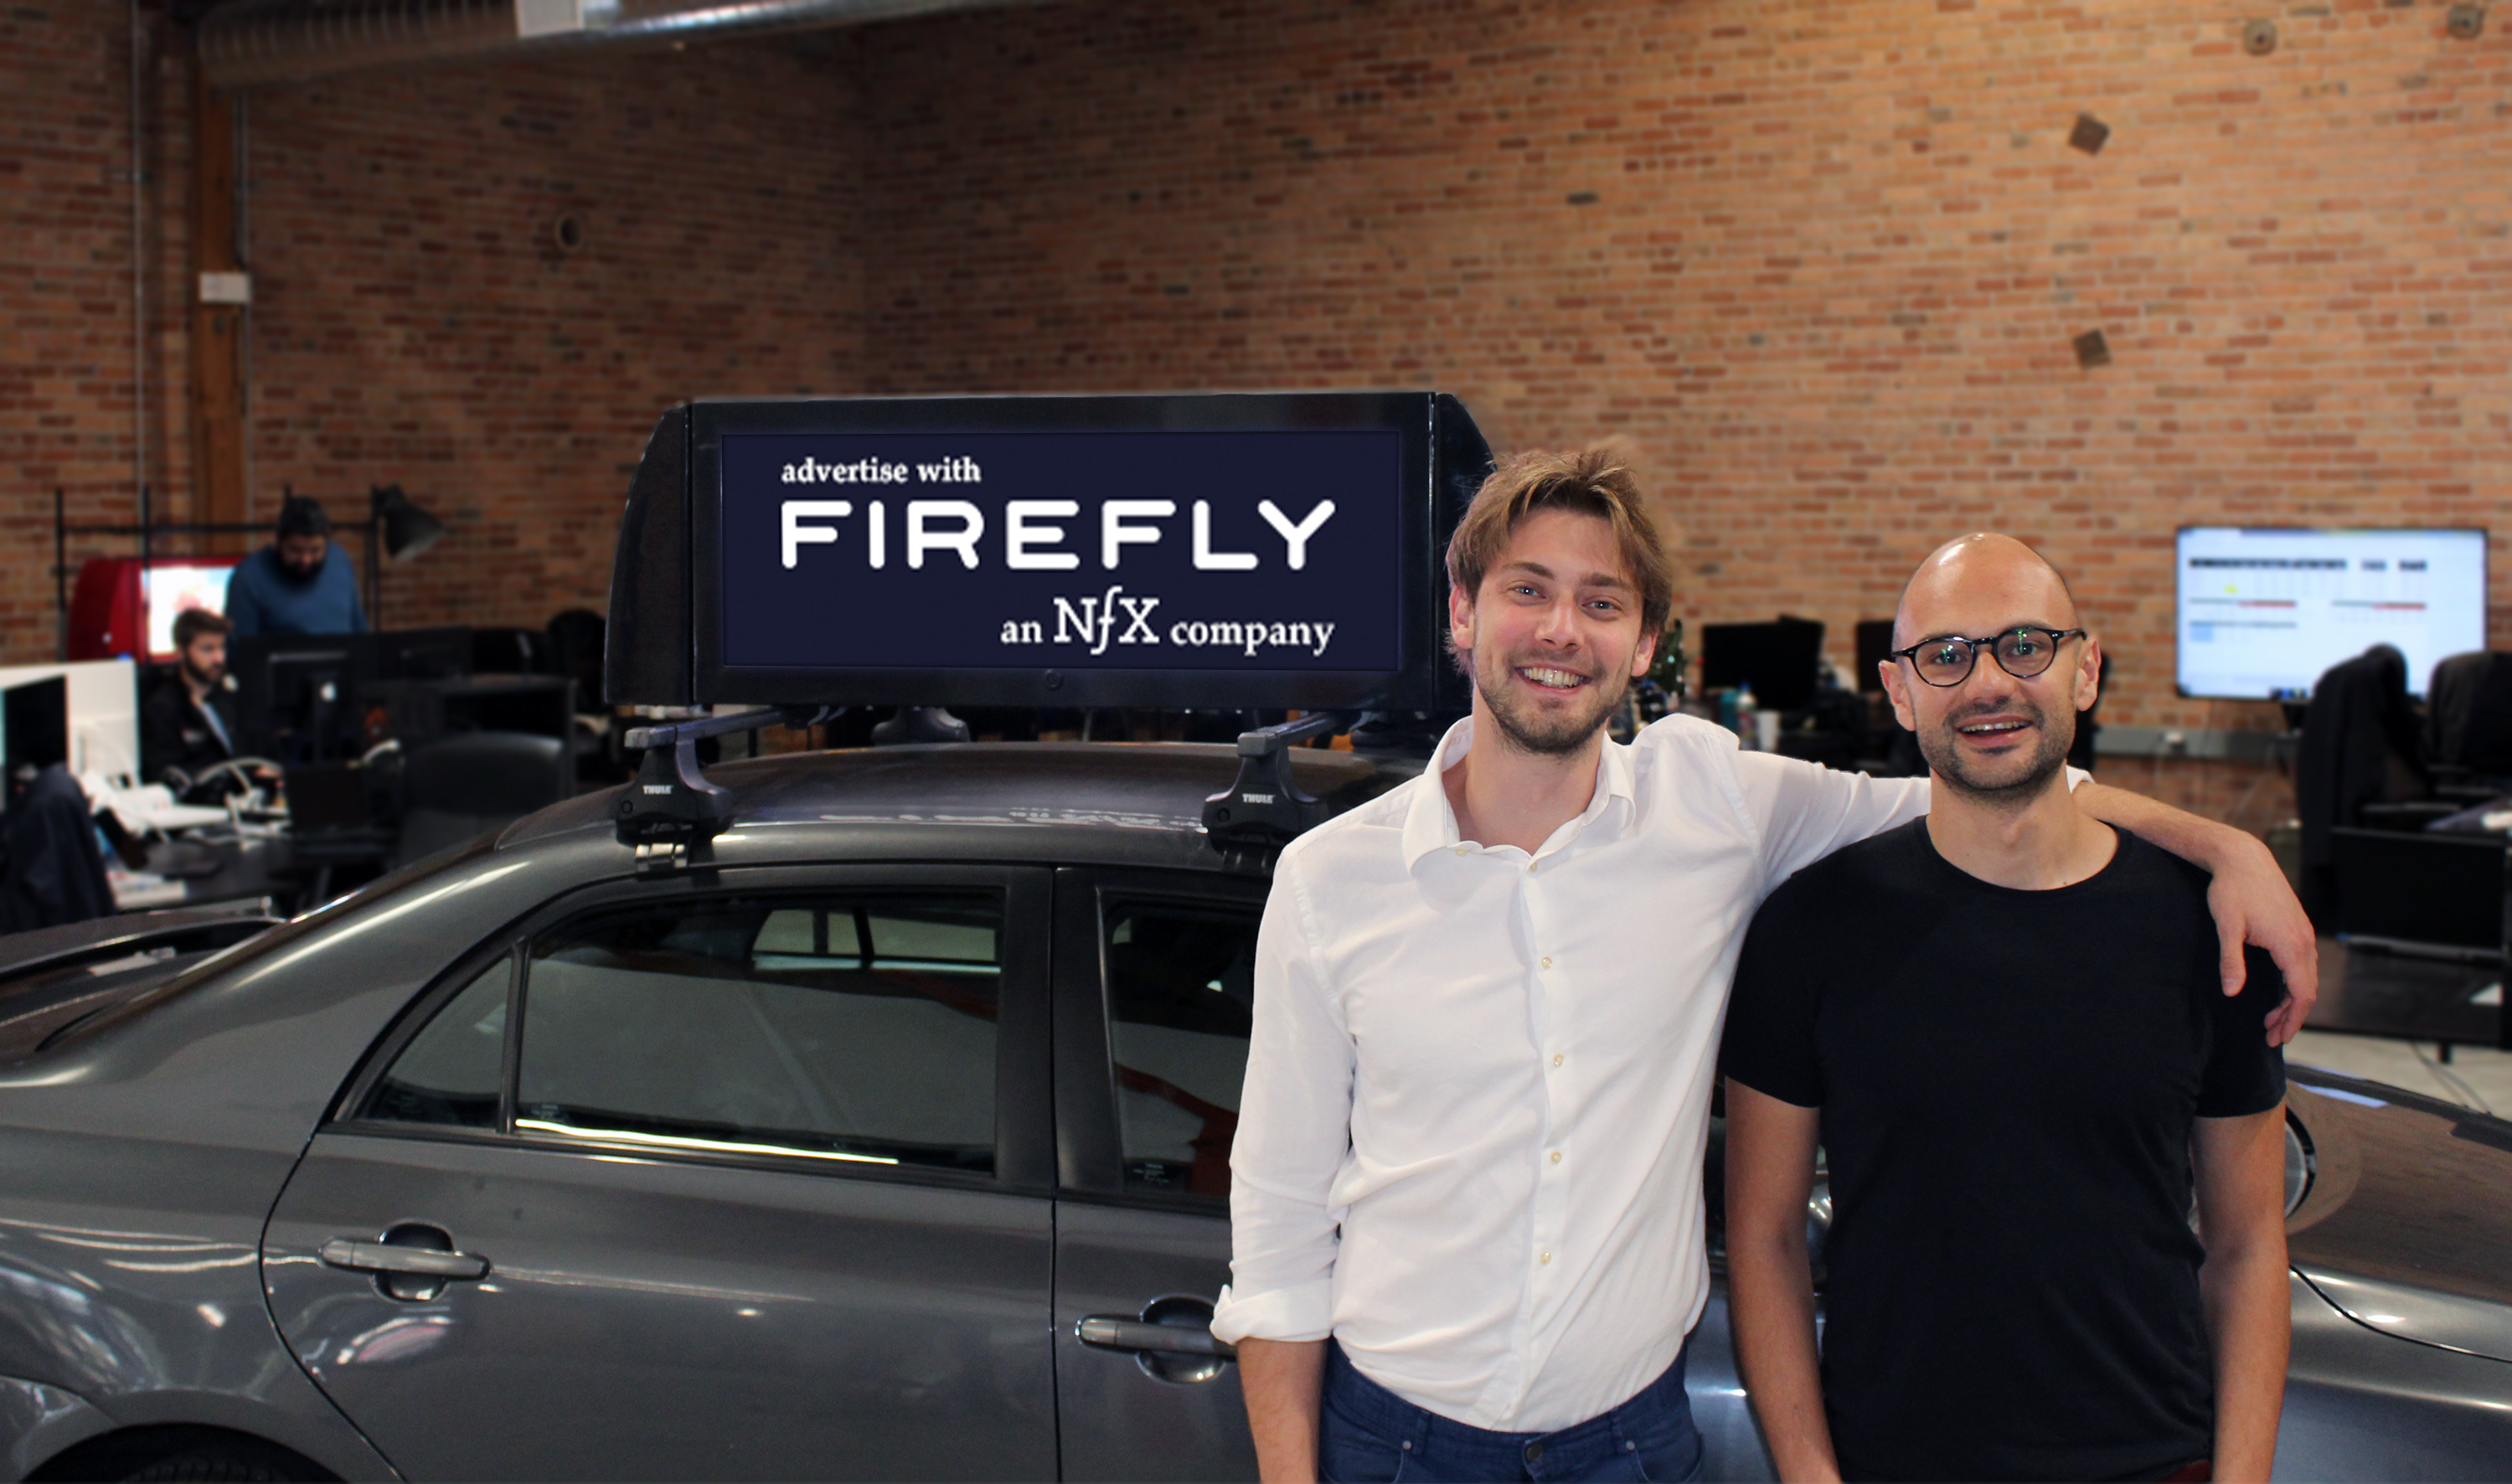 Rideshare advertising startup Firefly launches with $21 5M in